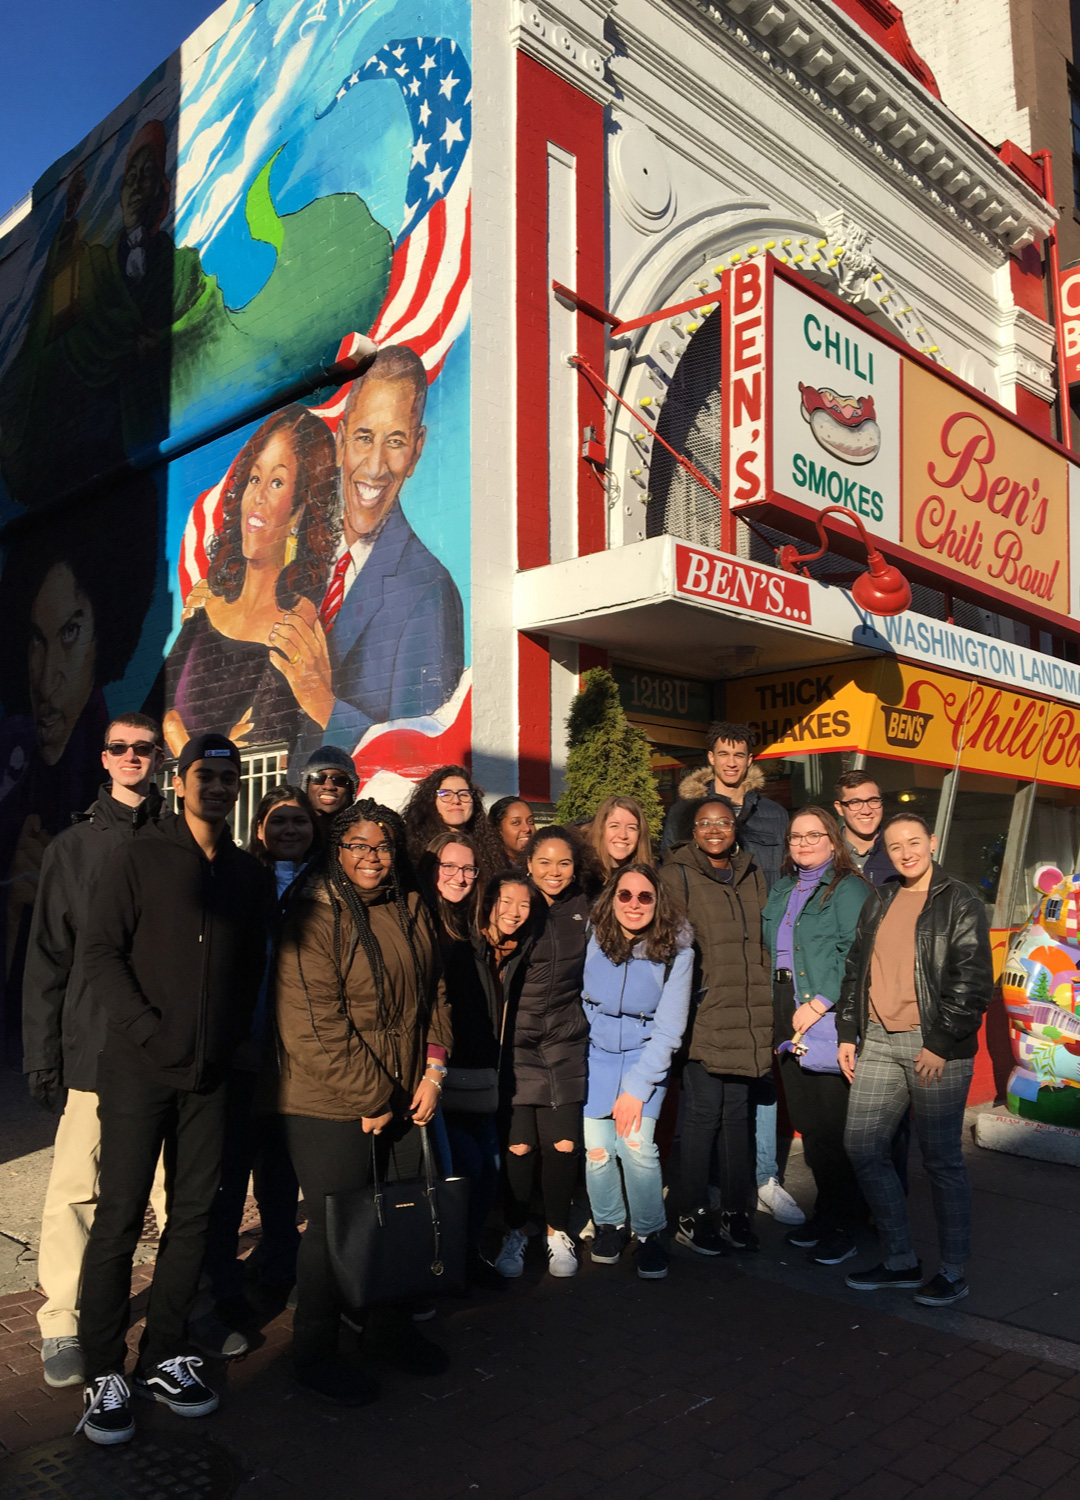 Students outside Ben's Chili Bowl